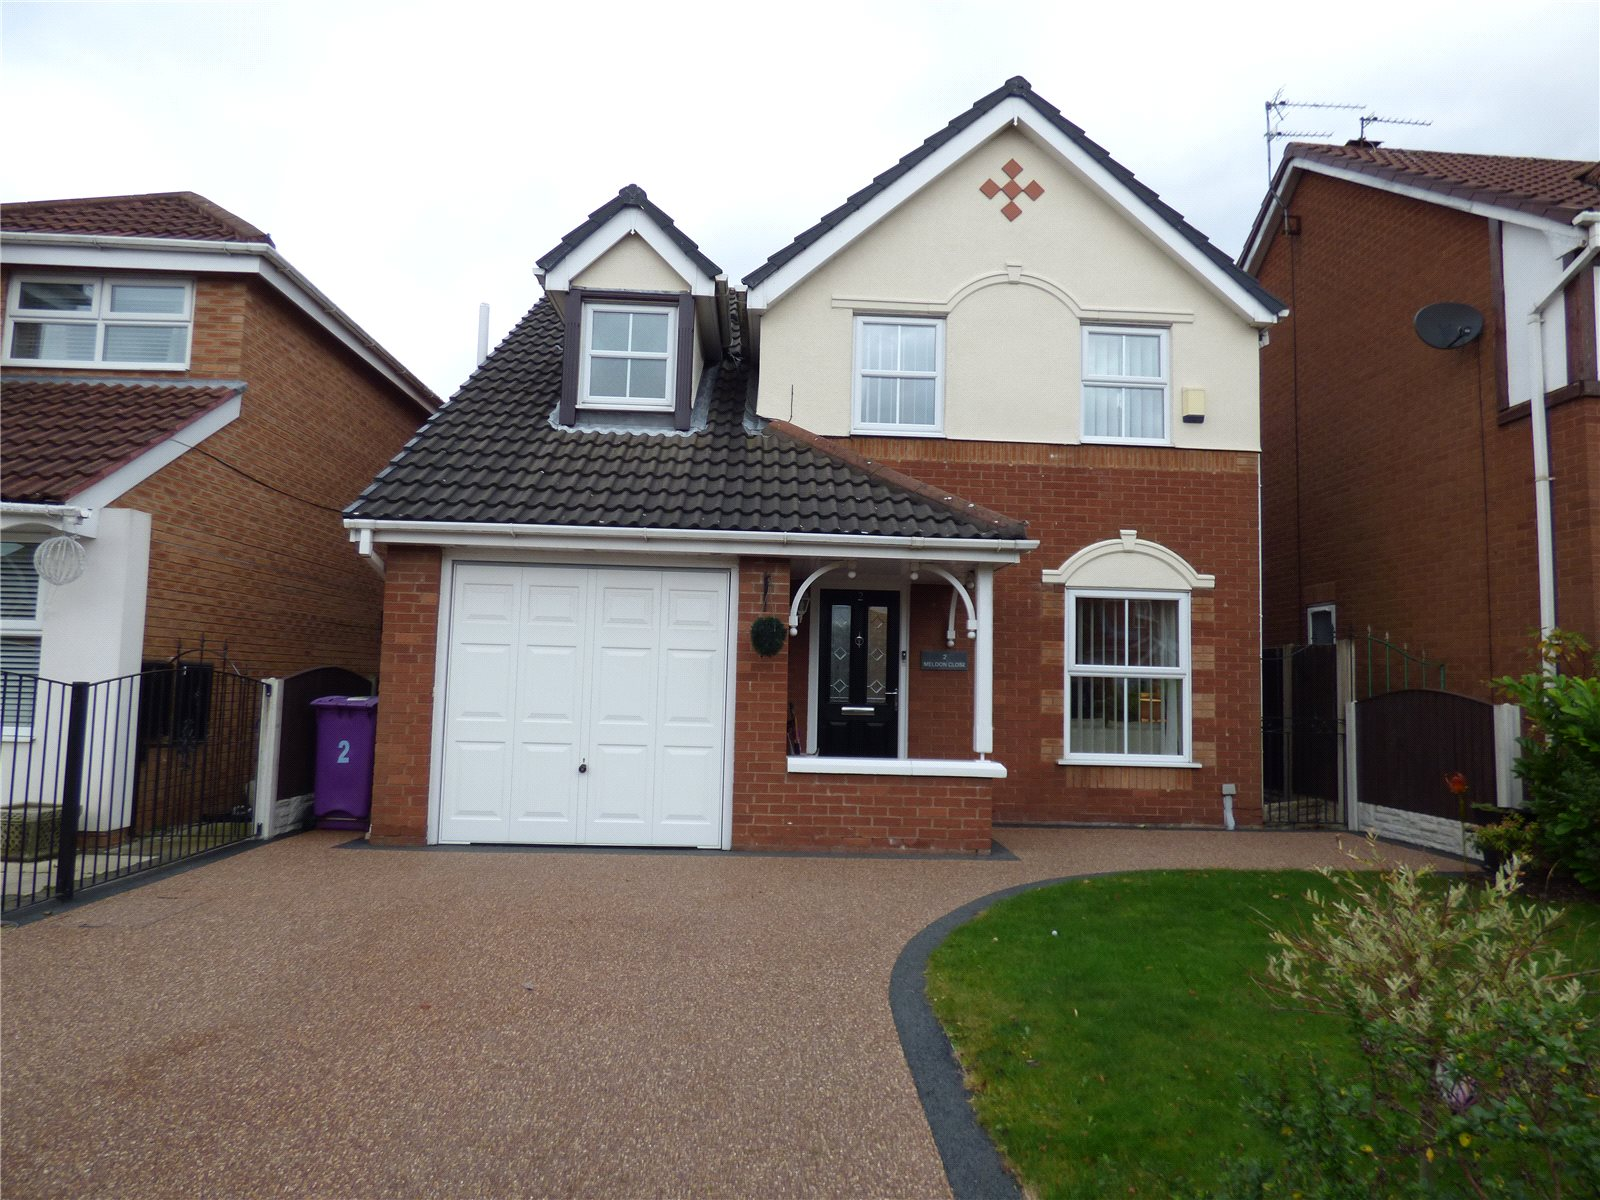 3 Bedrooms Detached House for sale in Meldon Close, Liverpool, Merseyside, L12